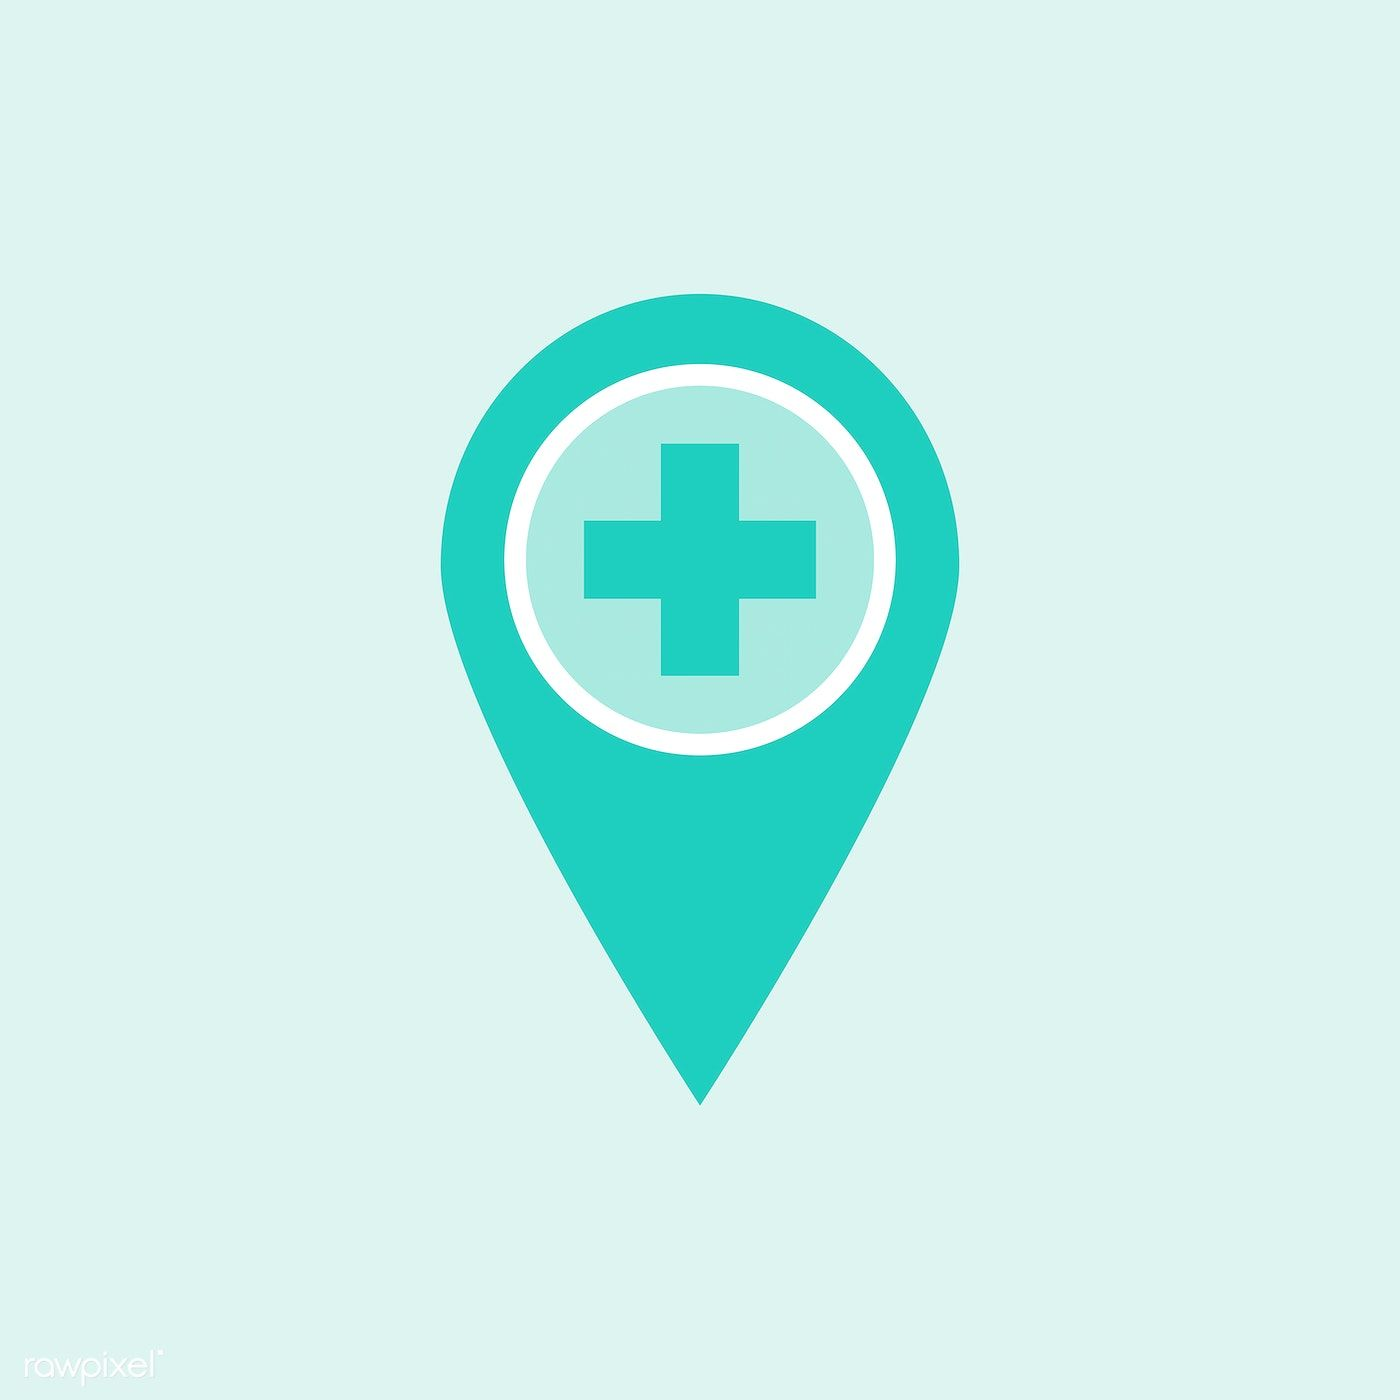 Green Medical Location Pin Element Vector Free Image By Rawpixel Com Manotang In 2021 Vector Free Location Pin Hospital Icon